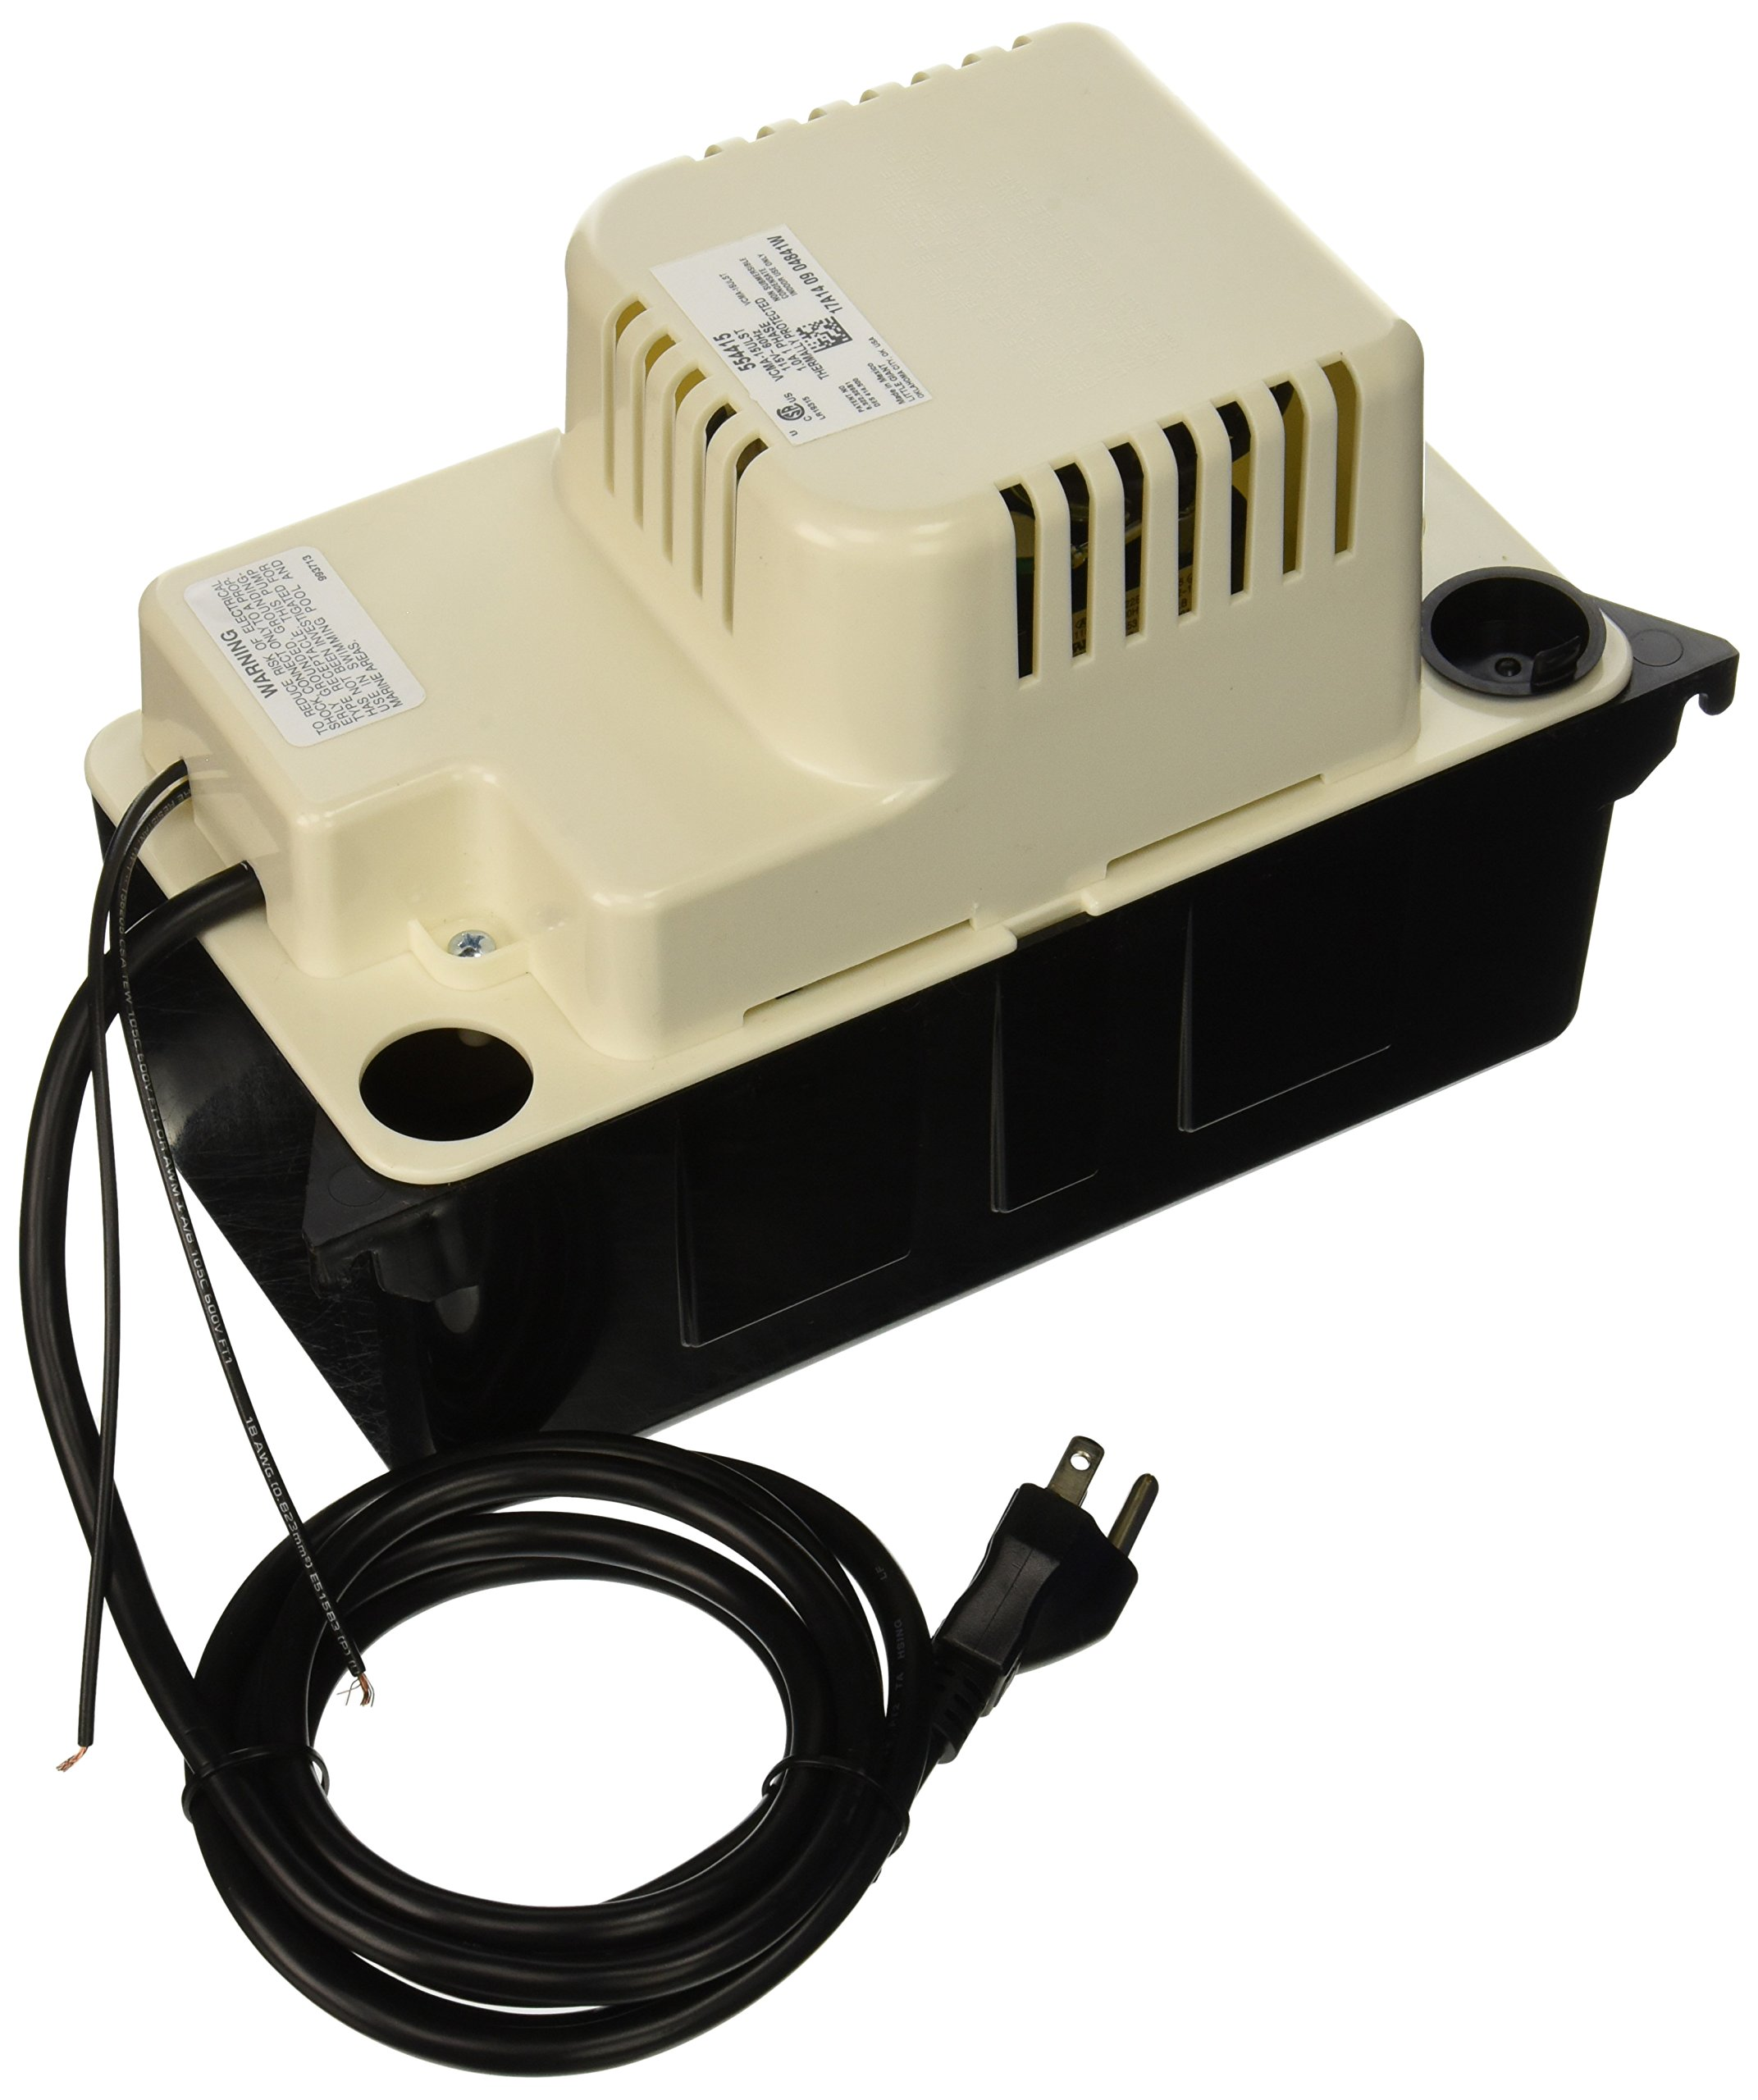 Little Giant 554415 65 GPH 115V Automatic Condensate Removal Pump with Safety Switch and 20ft. Tubing by LITTLE GIANT (Image #2)